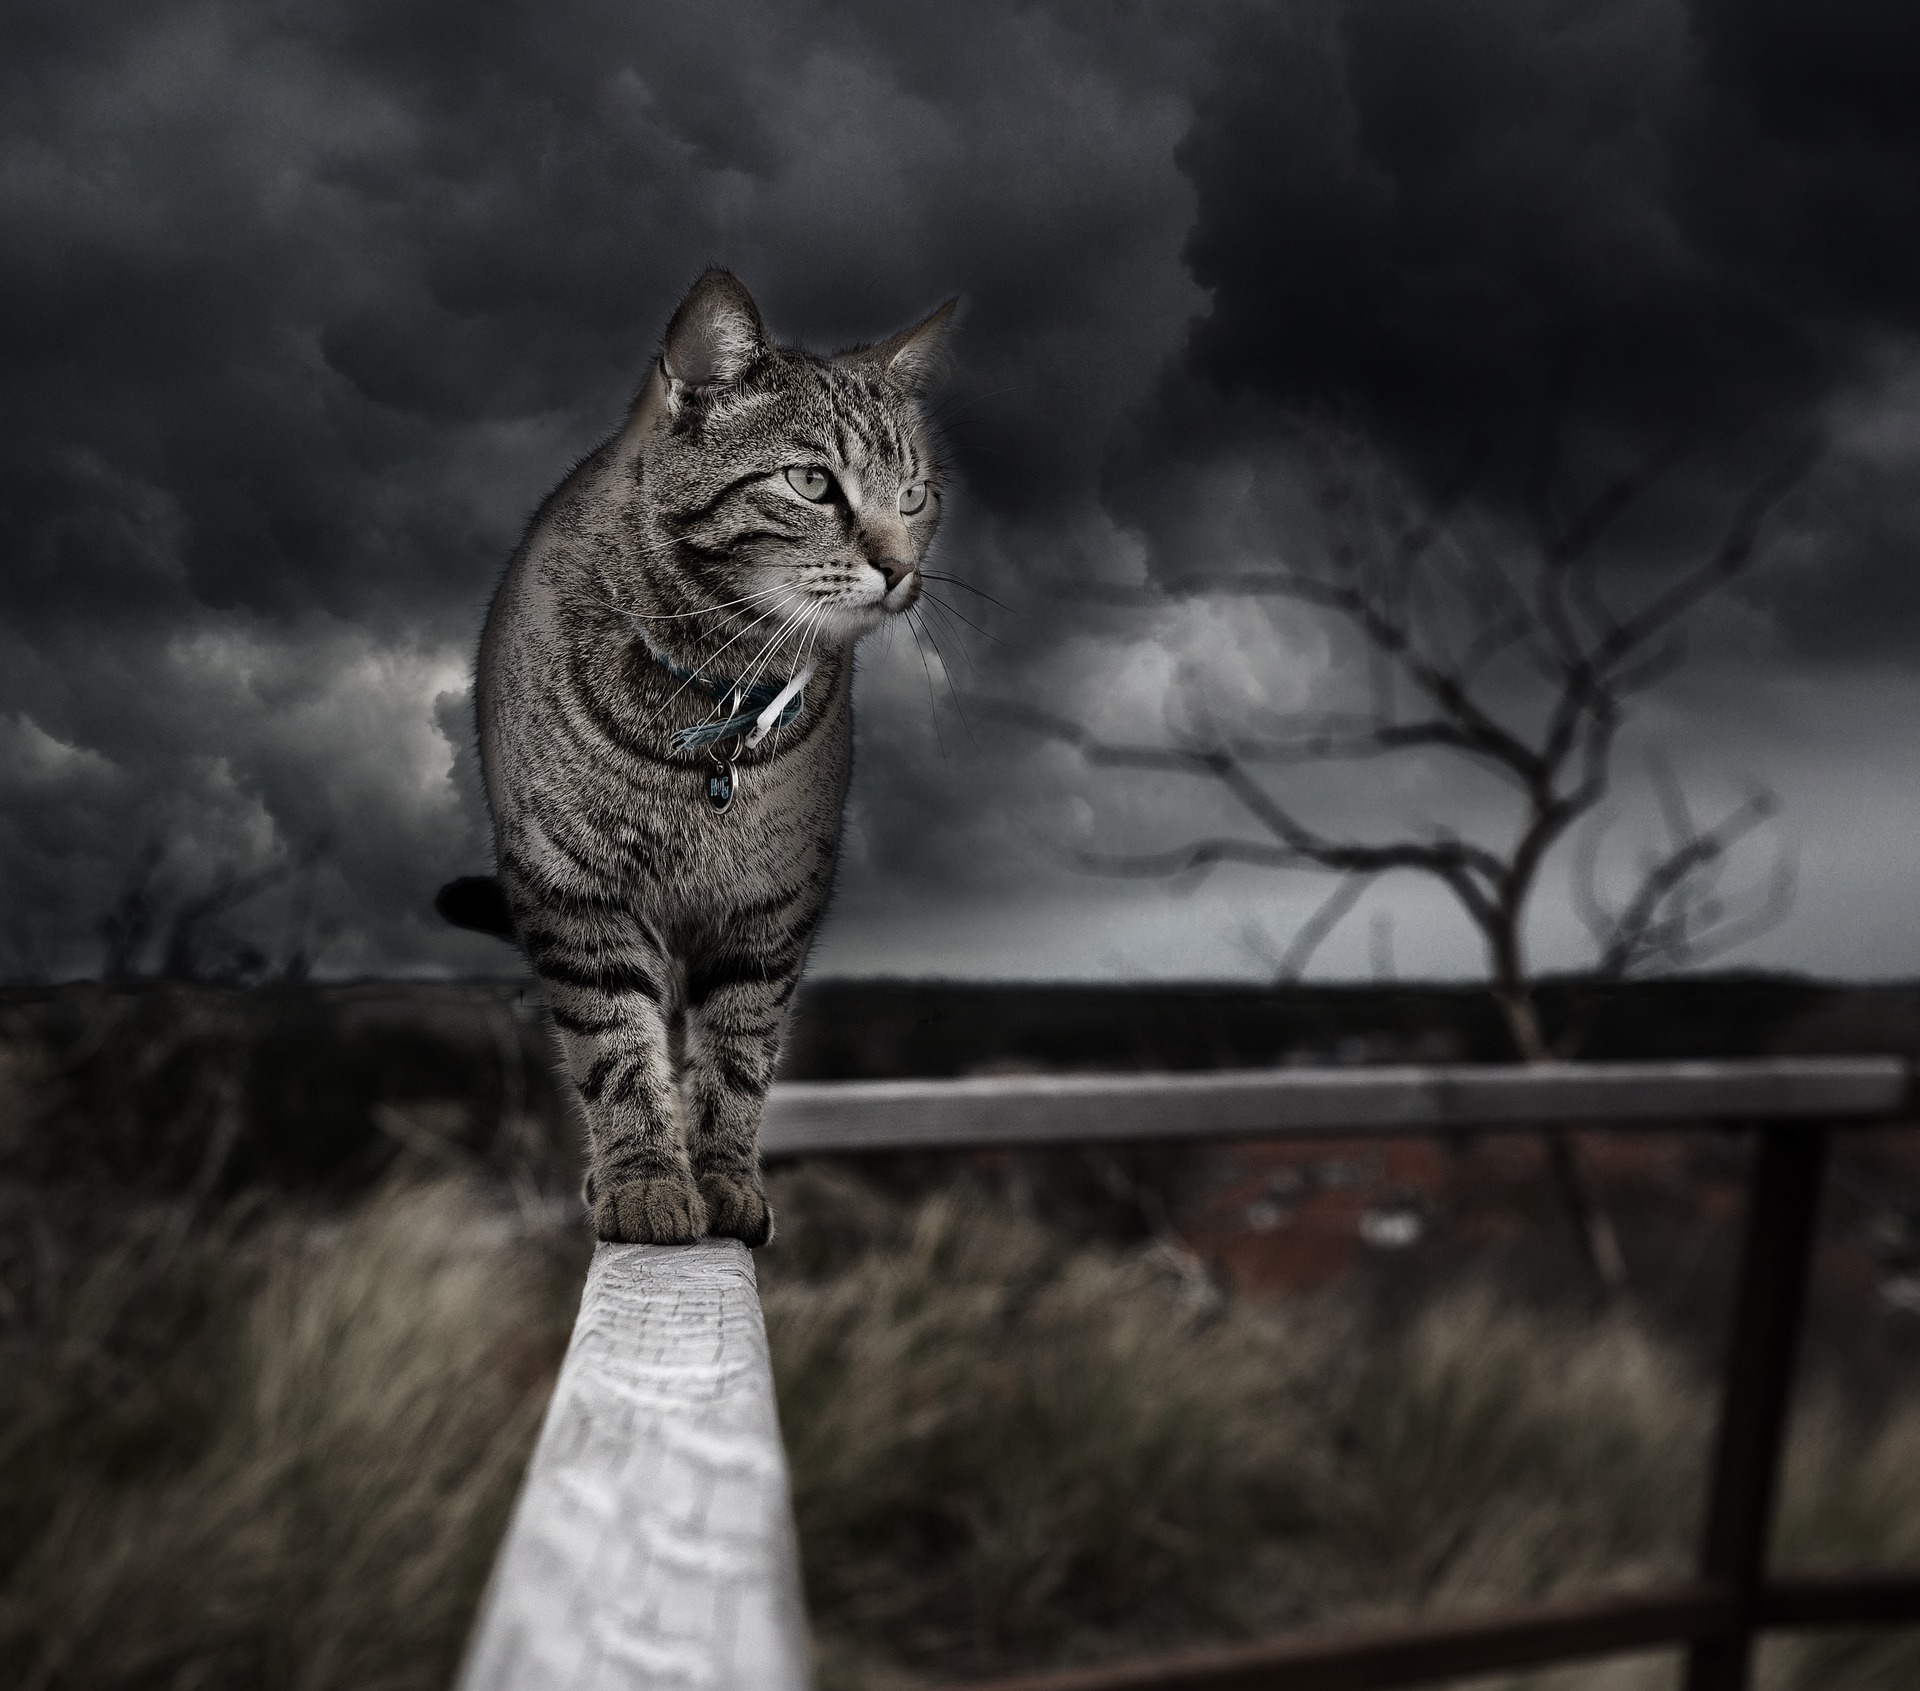 cat walking on railing, storm in background - pet care